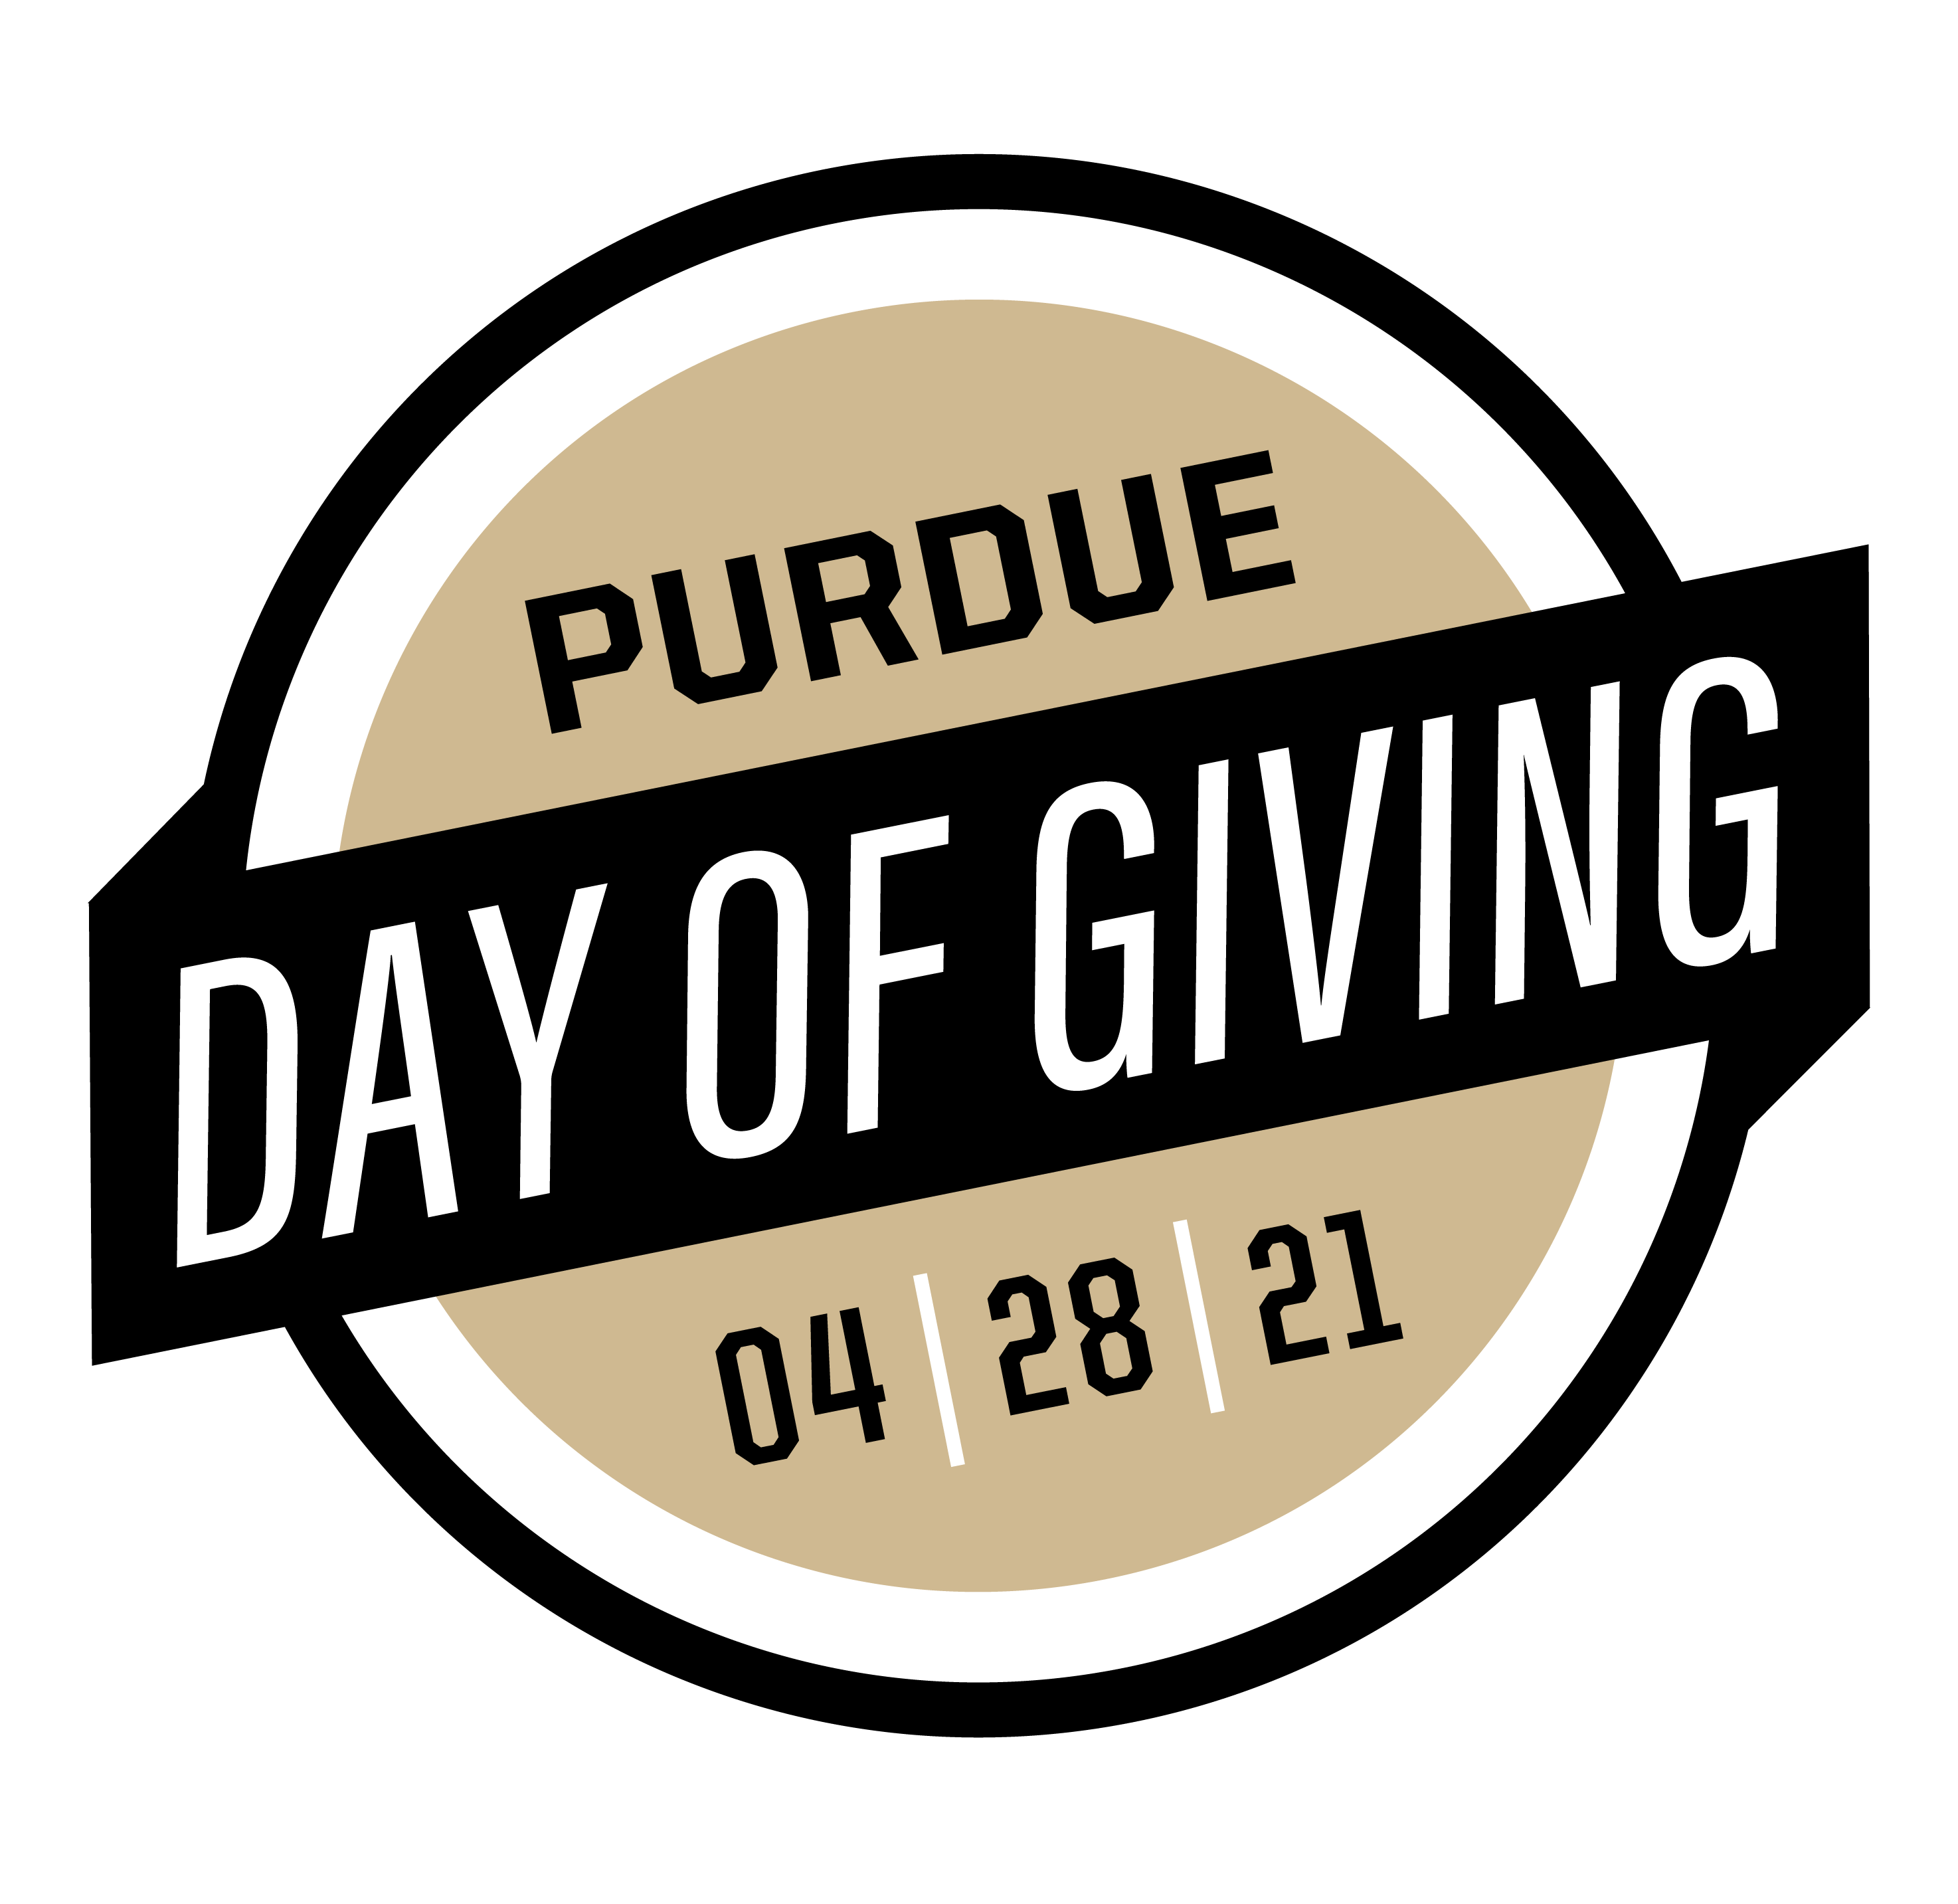 Purdue Day of Giving 2021